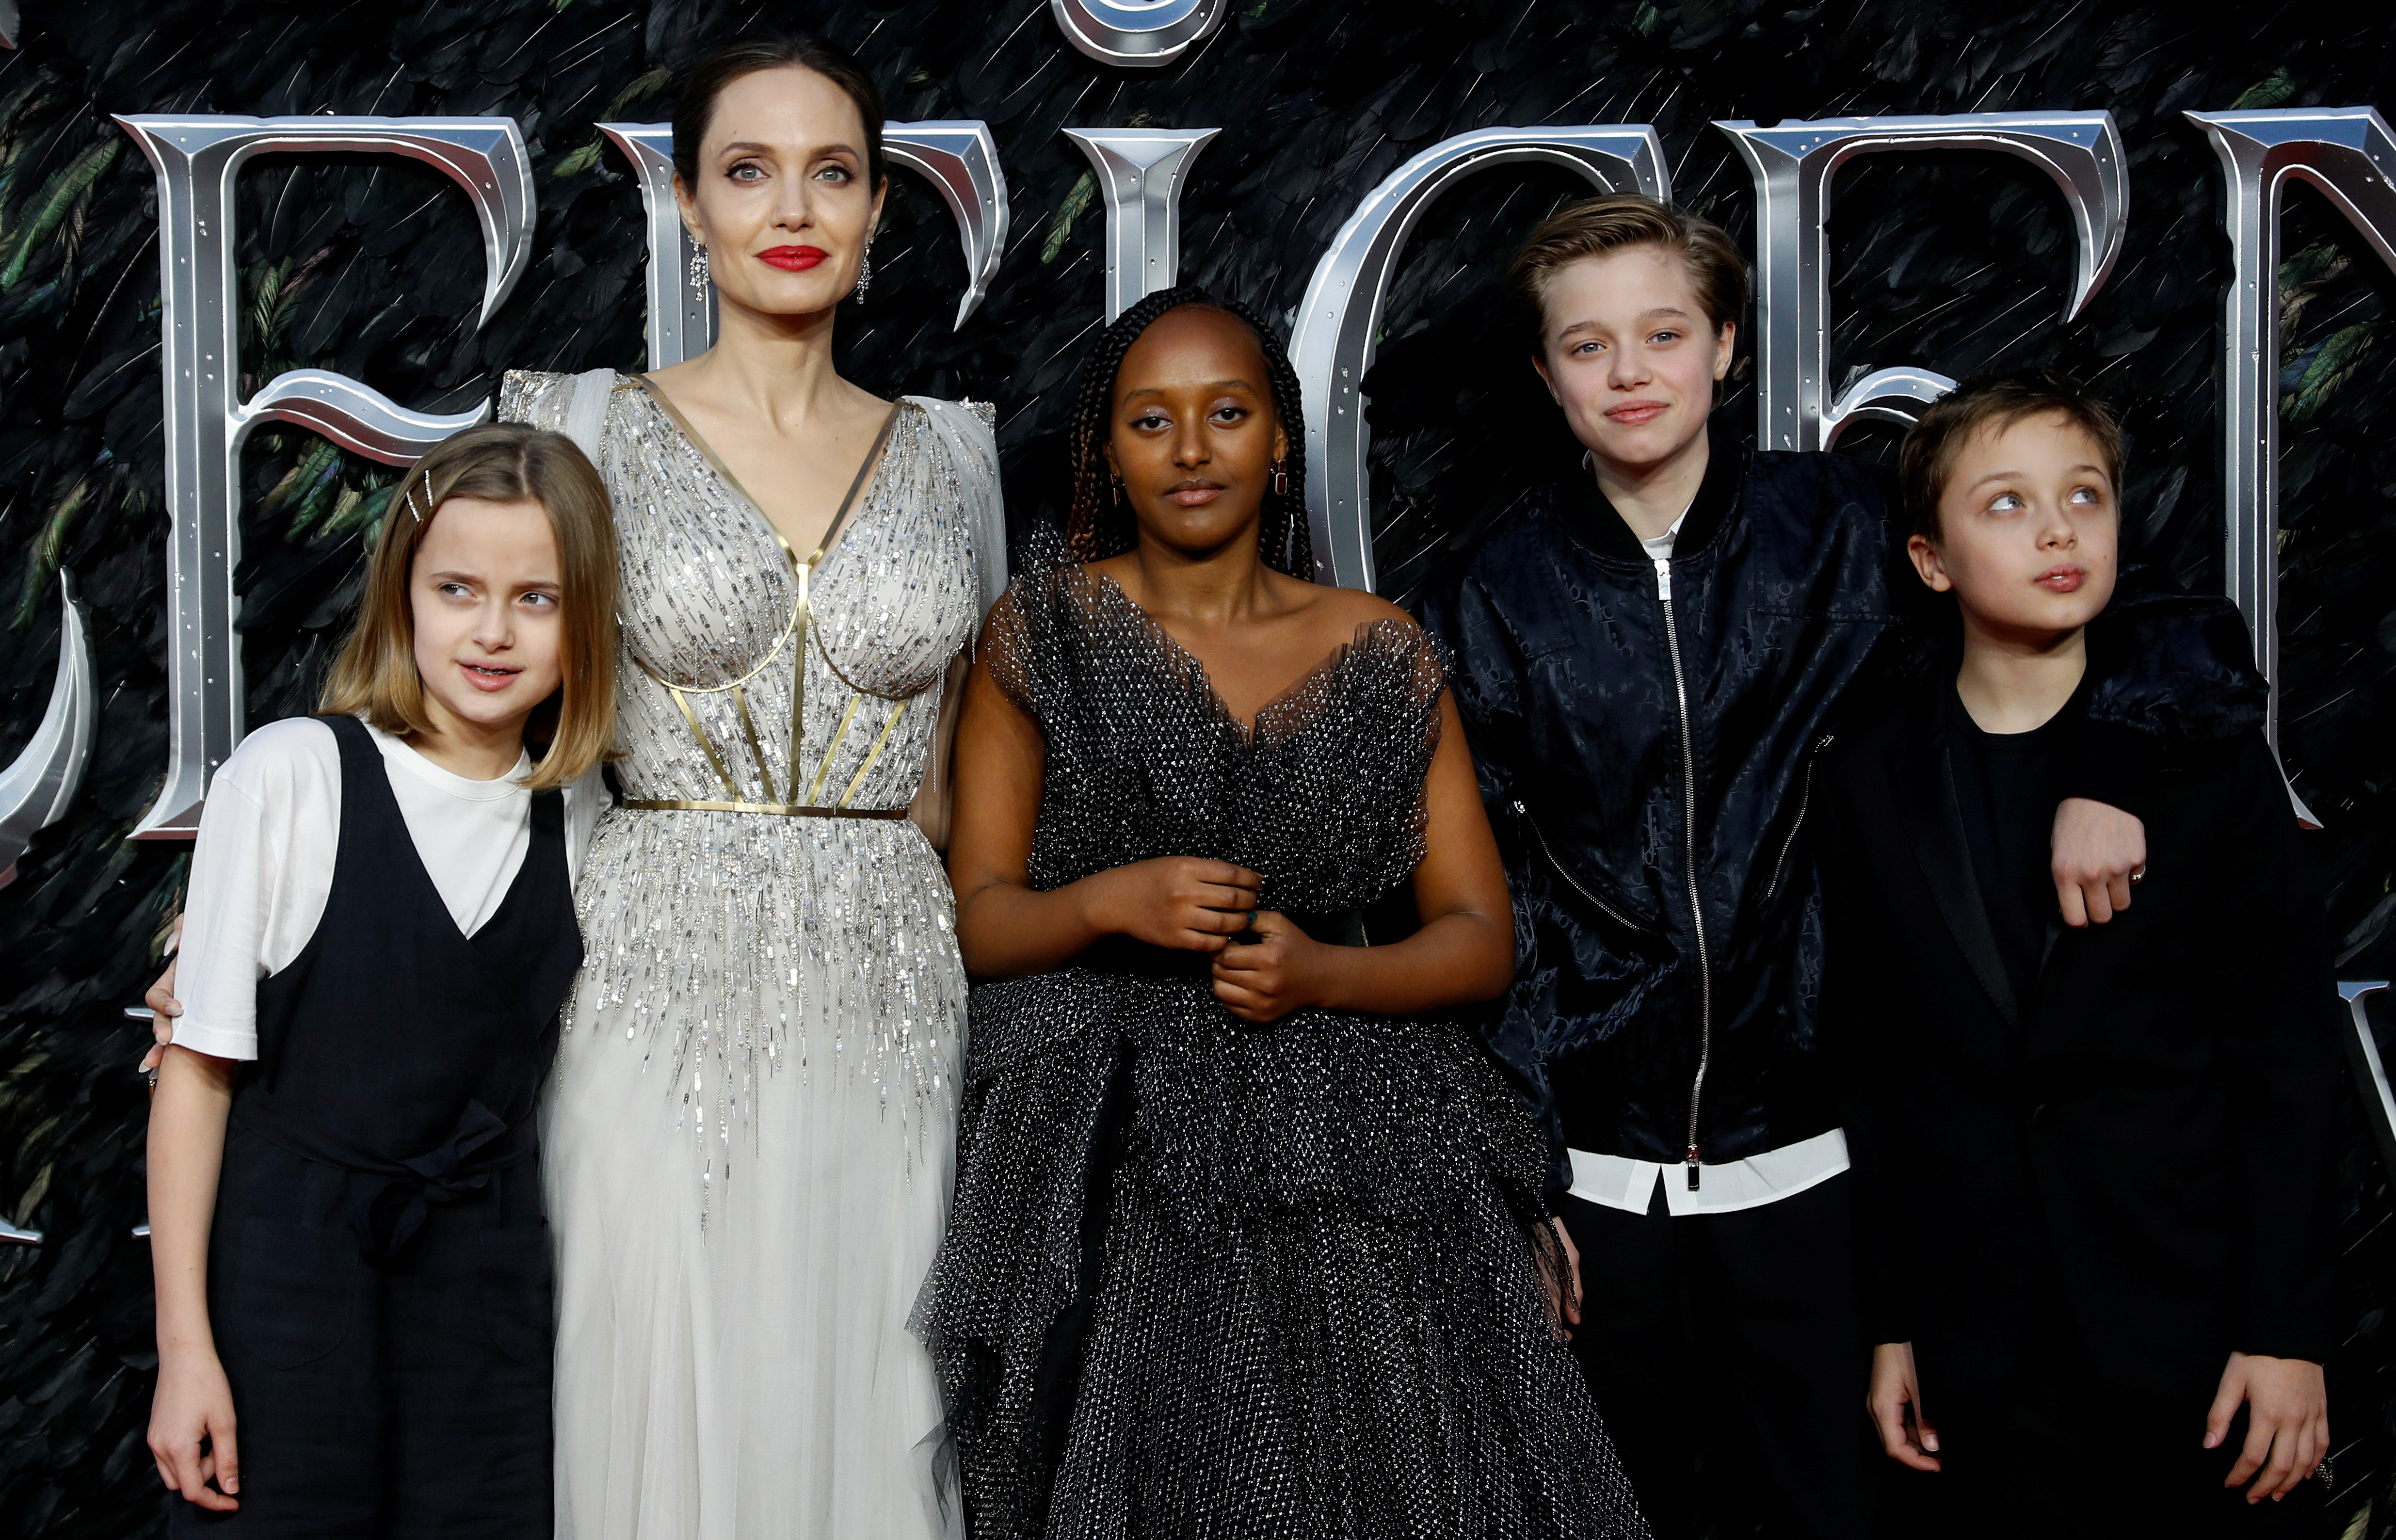 Actor Angelina Jolie, accompanied by her children, poses as she attends the UK premiere of